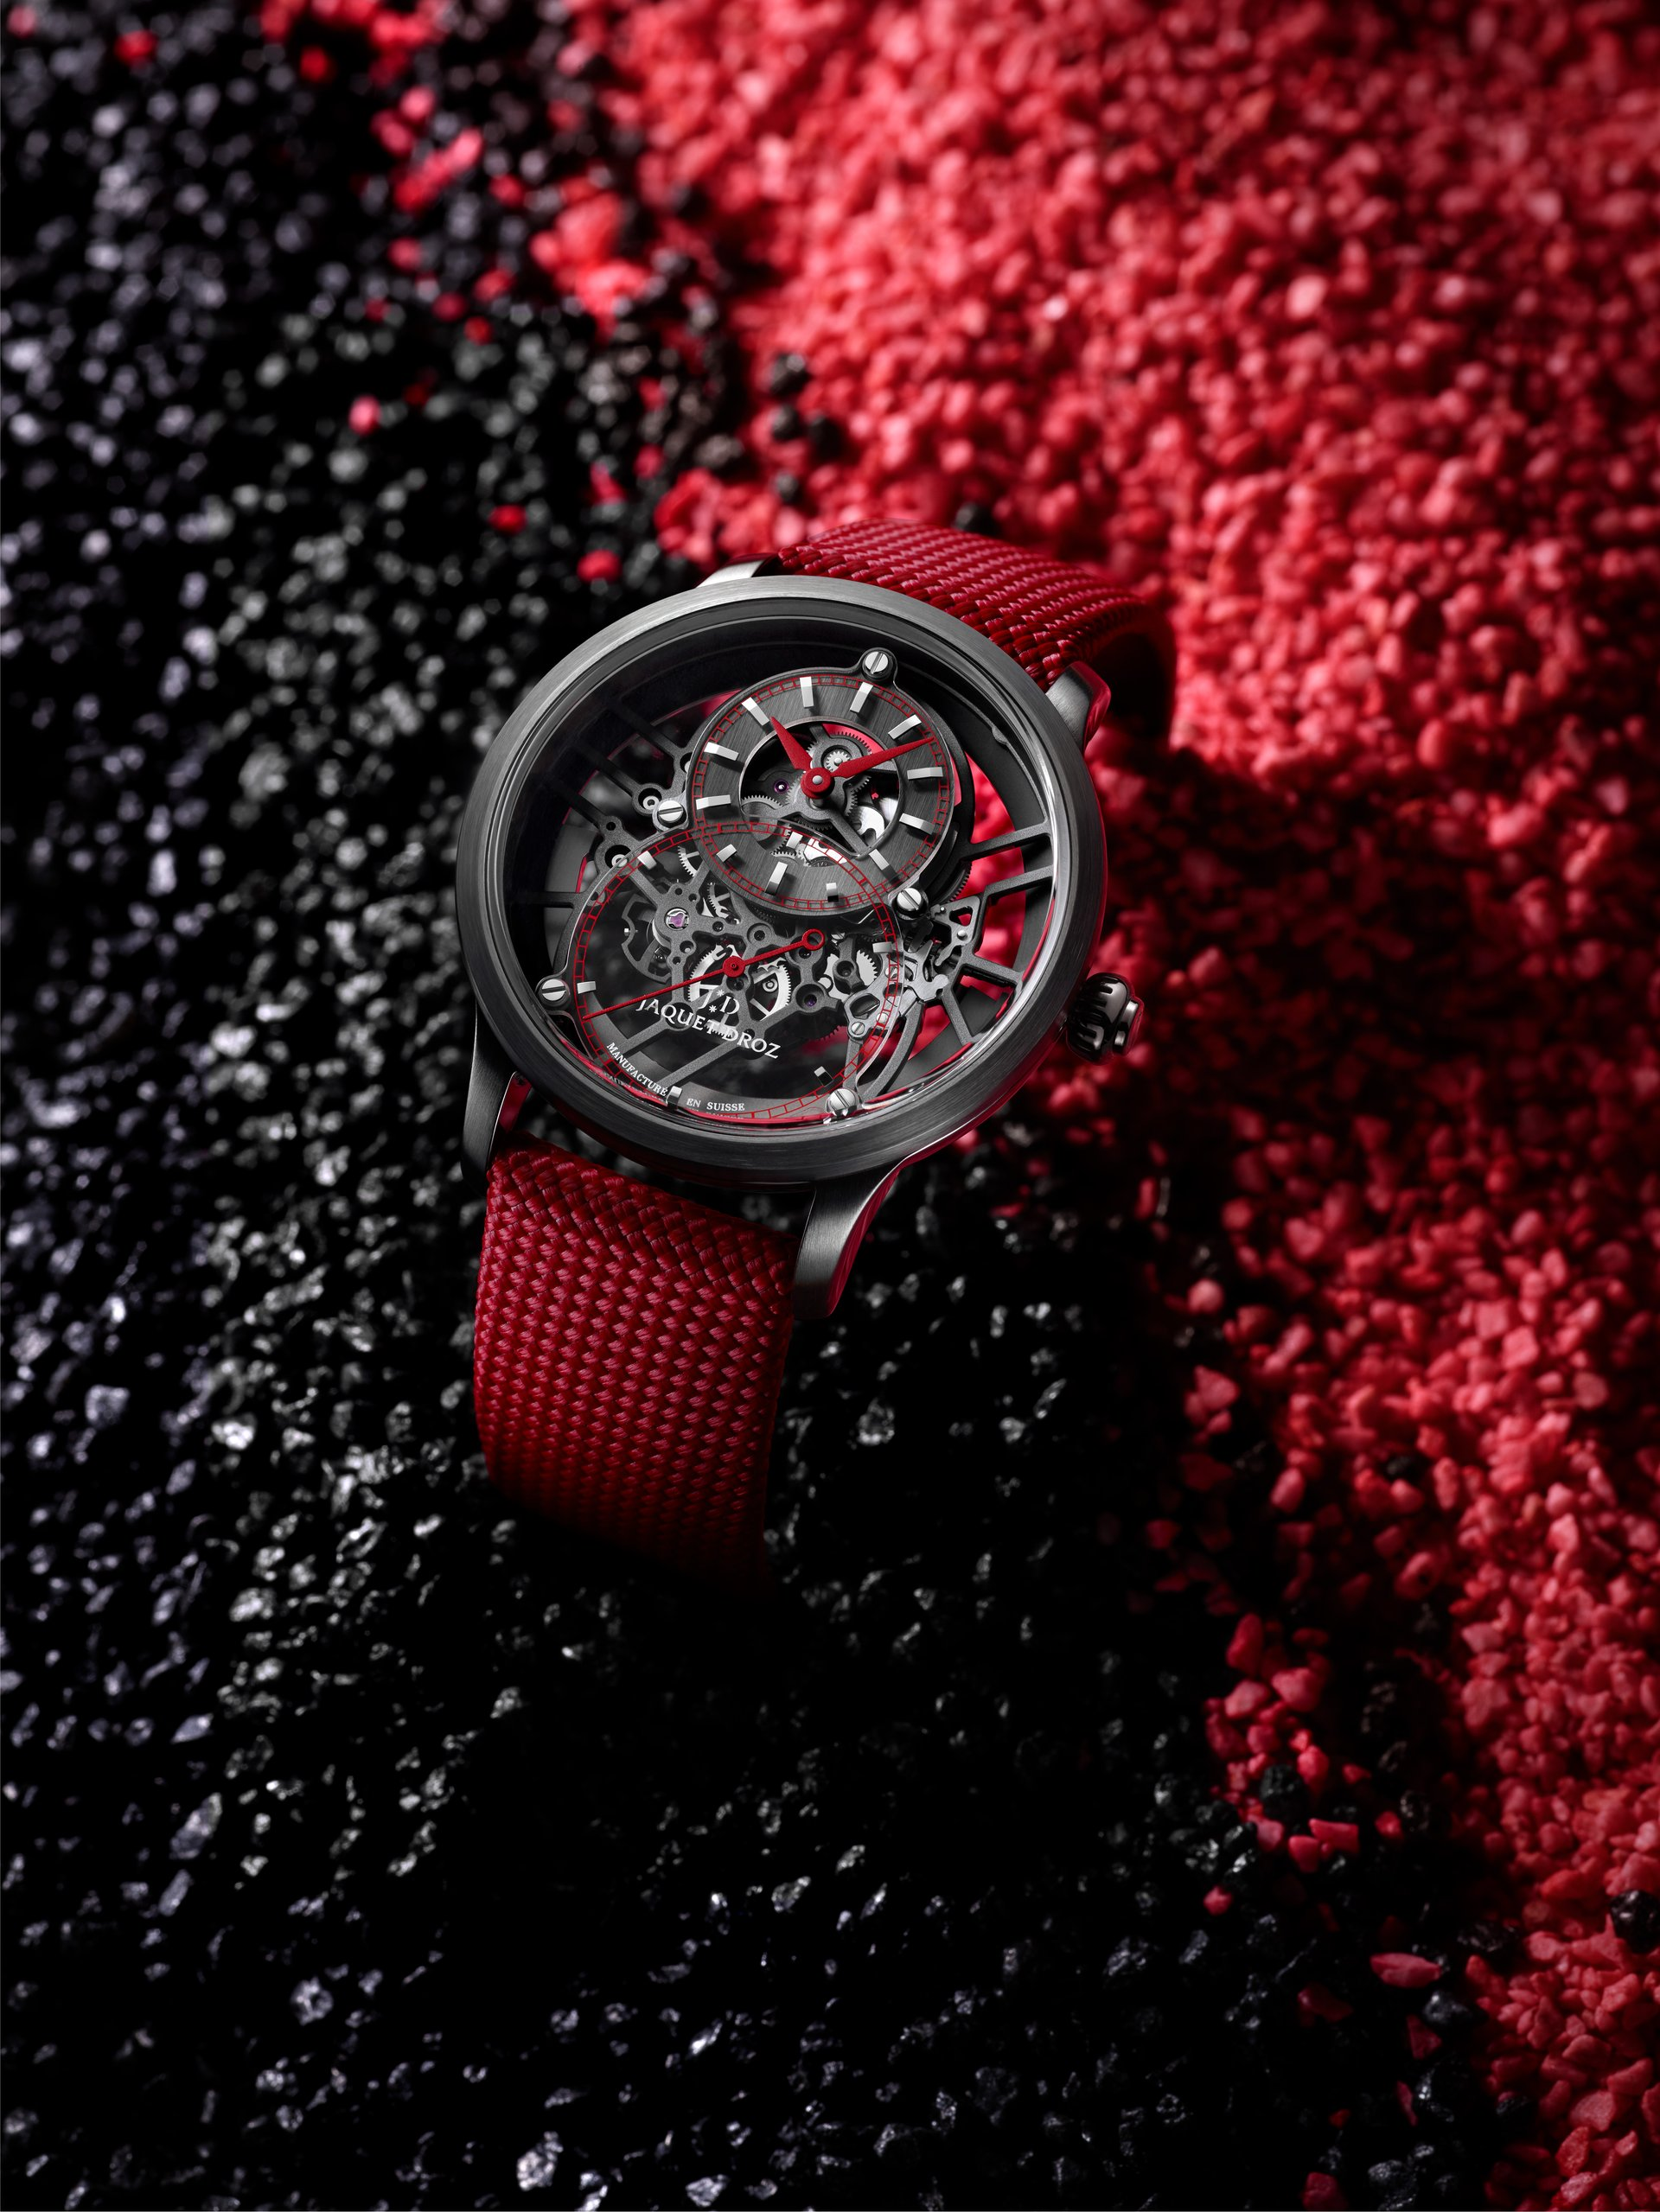 Jaquet Droz Grande Seconde Skelet-One Only Watch 2019